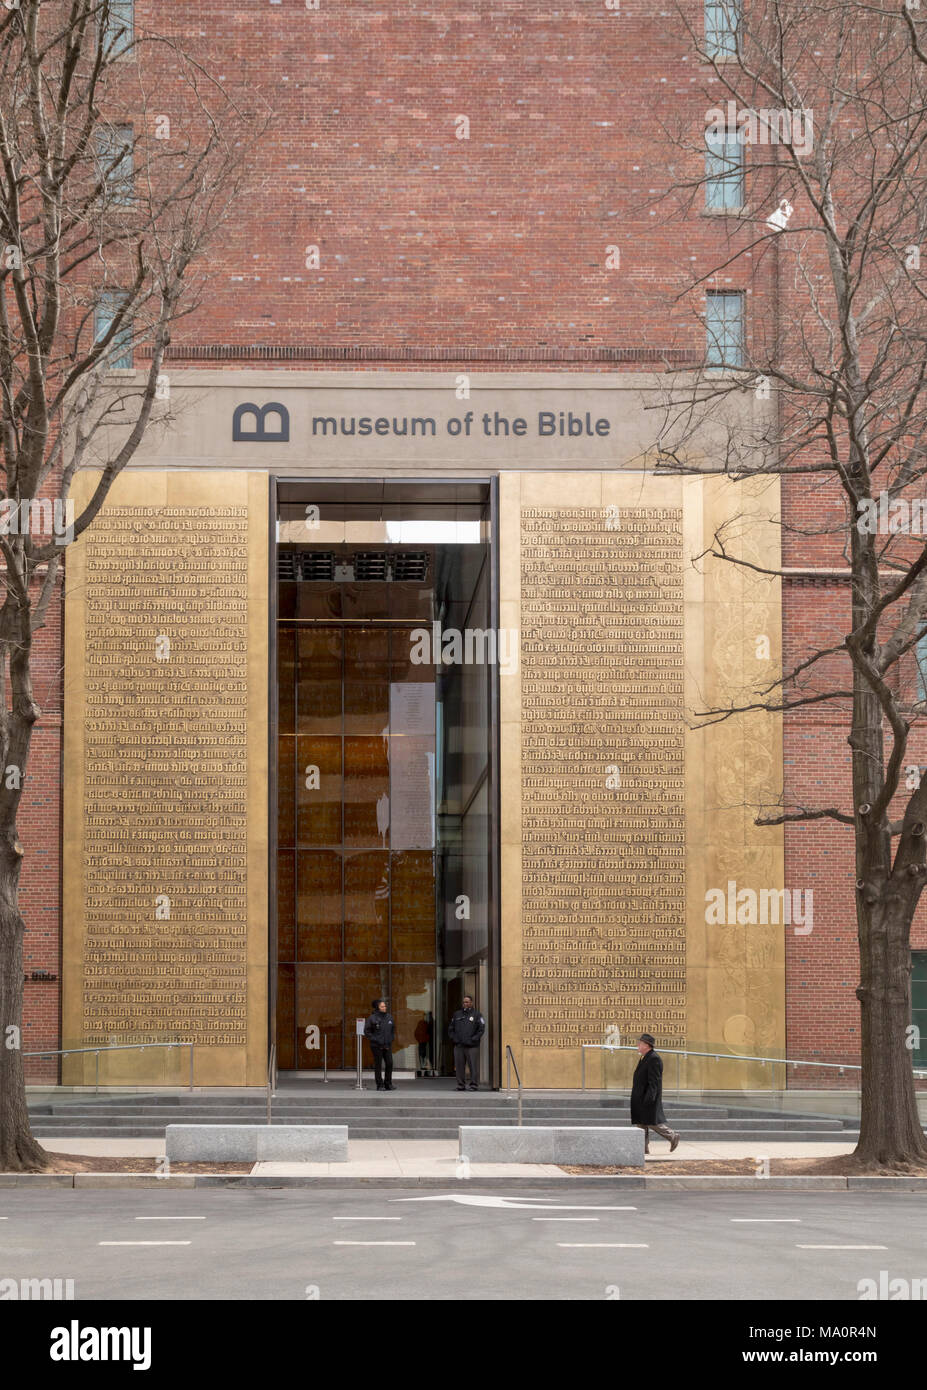 Washington, DC - The entrance to the Museum of the Bible. The 40-foot tall bronze doors carry the creation story from Genesis, from an early edition o - Stock Image